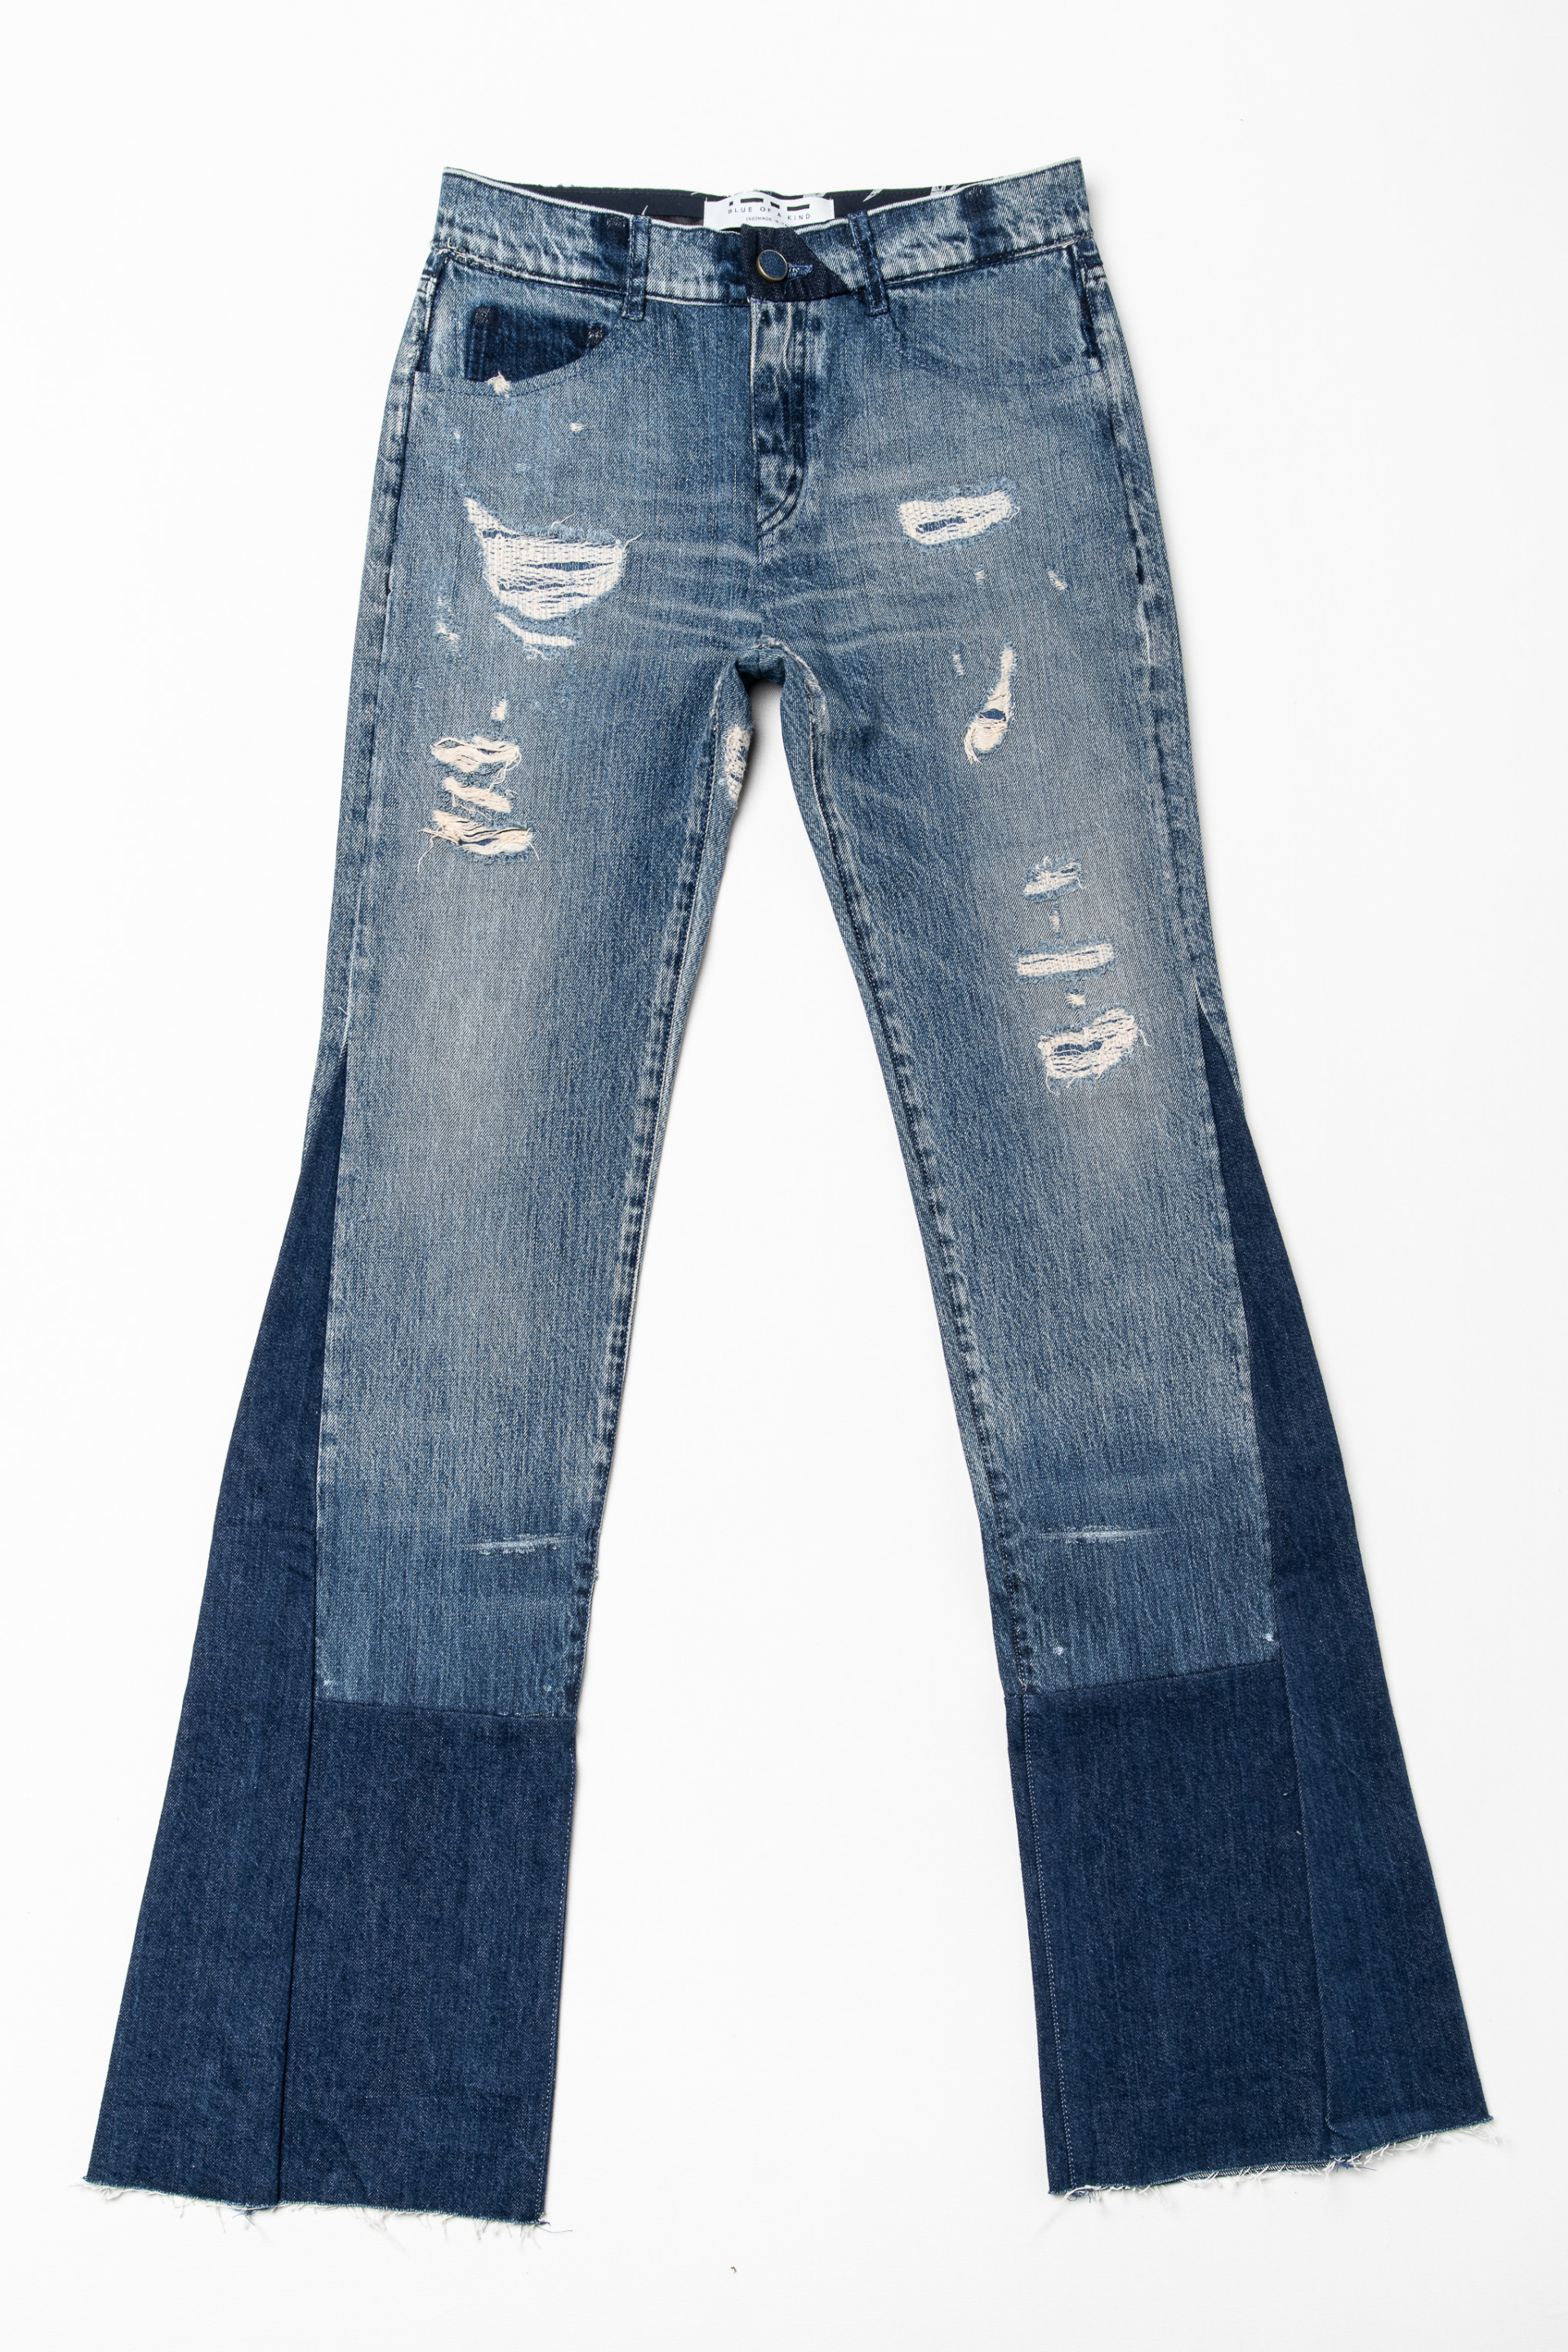 denim jeans berenice flair blue of a kind candiani denim store